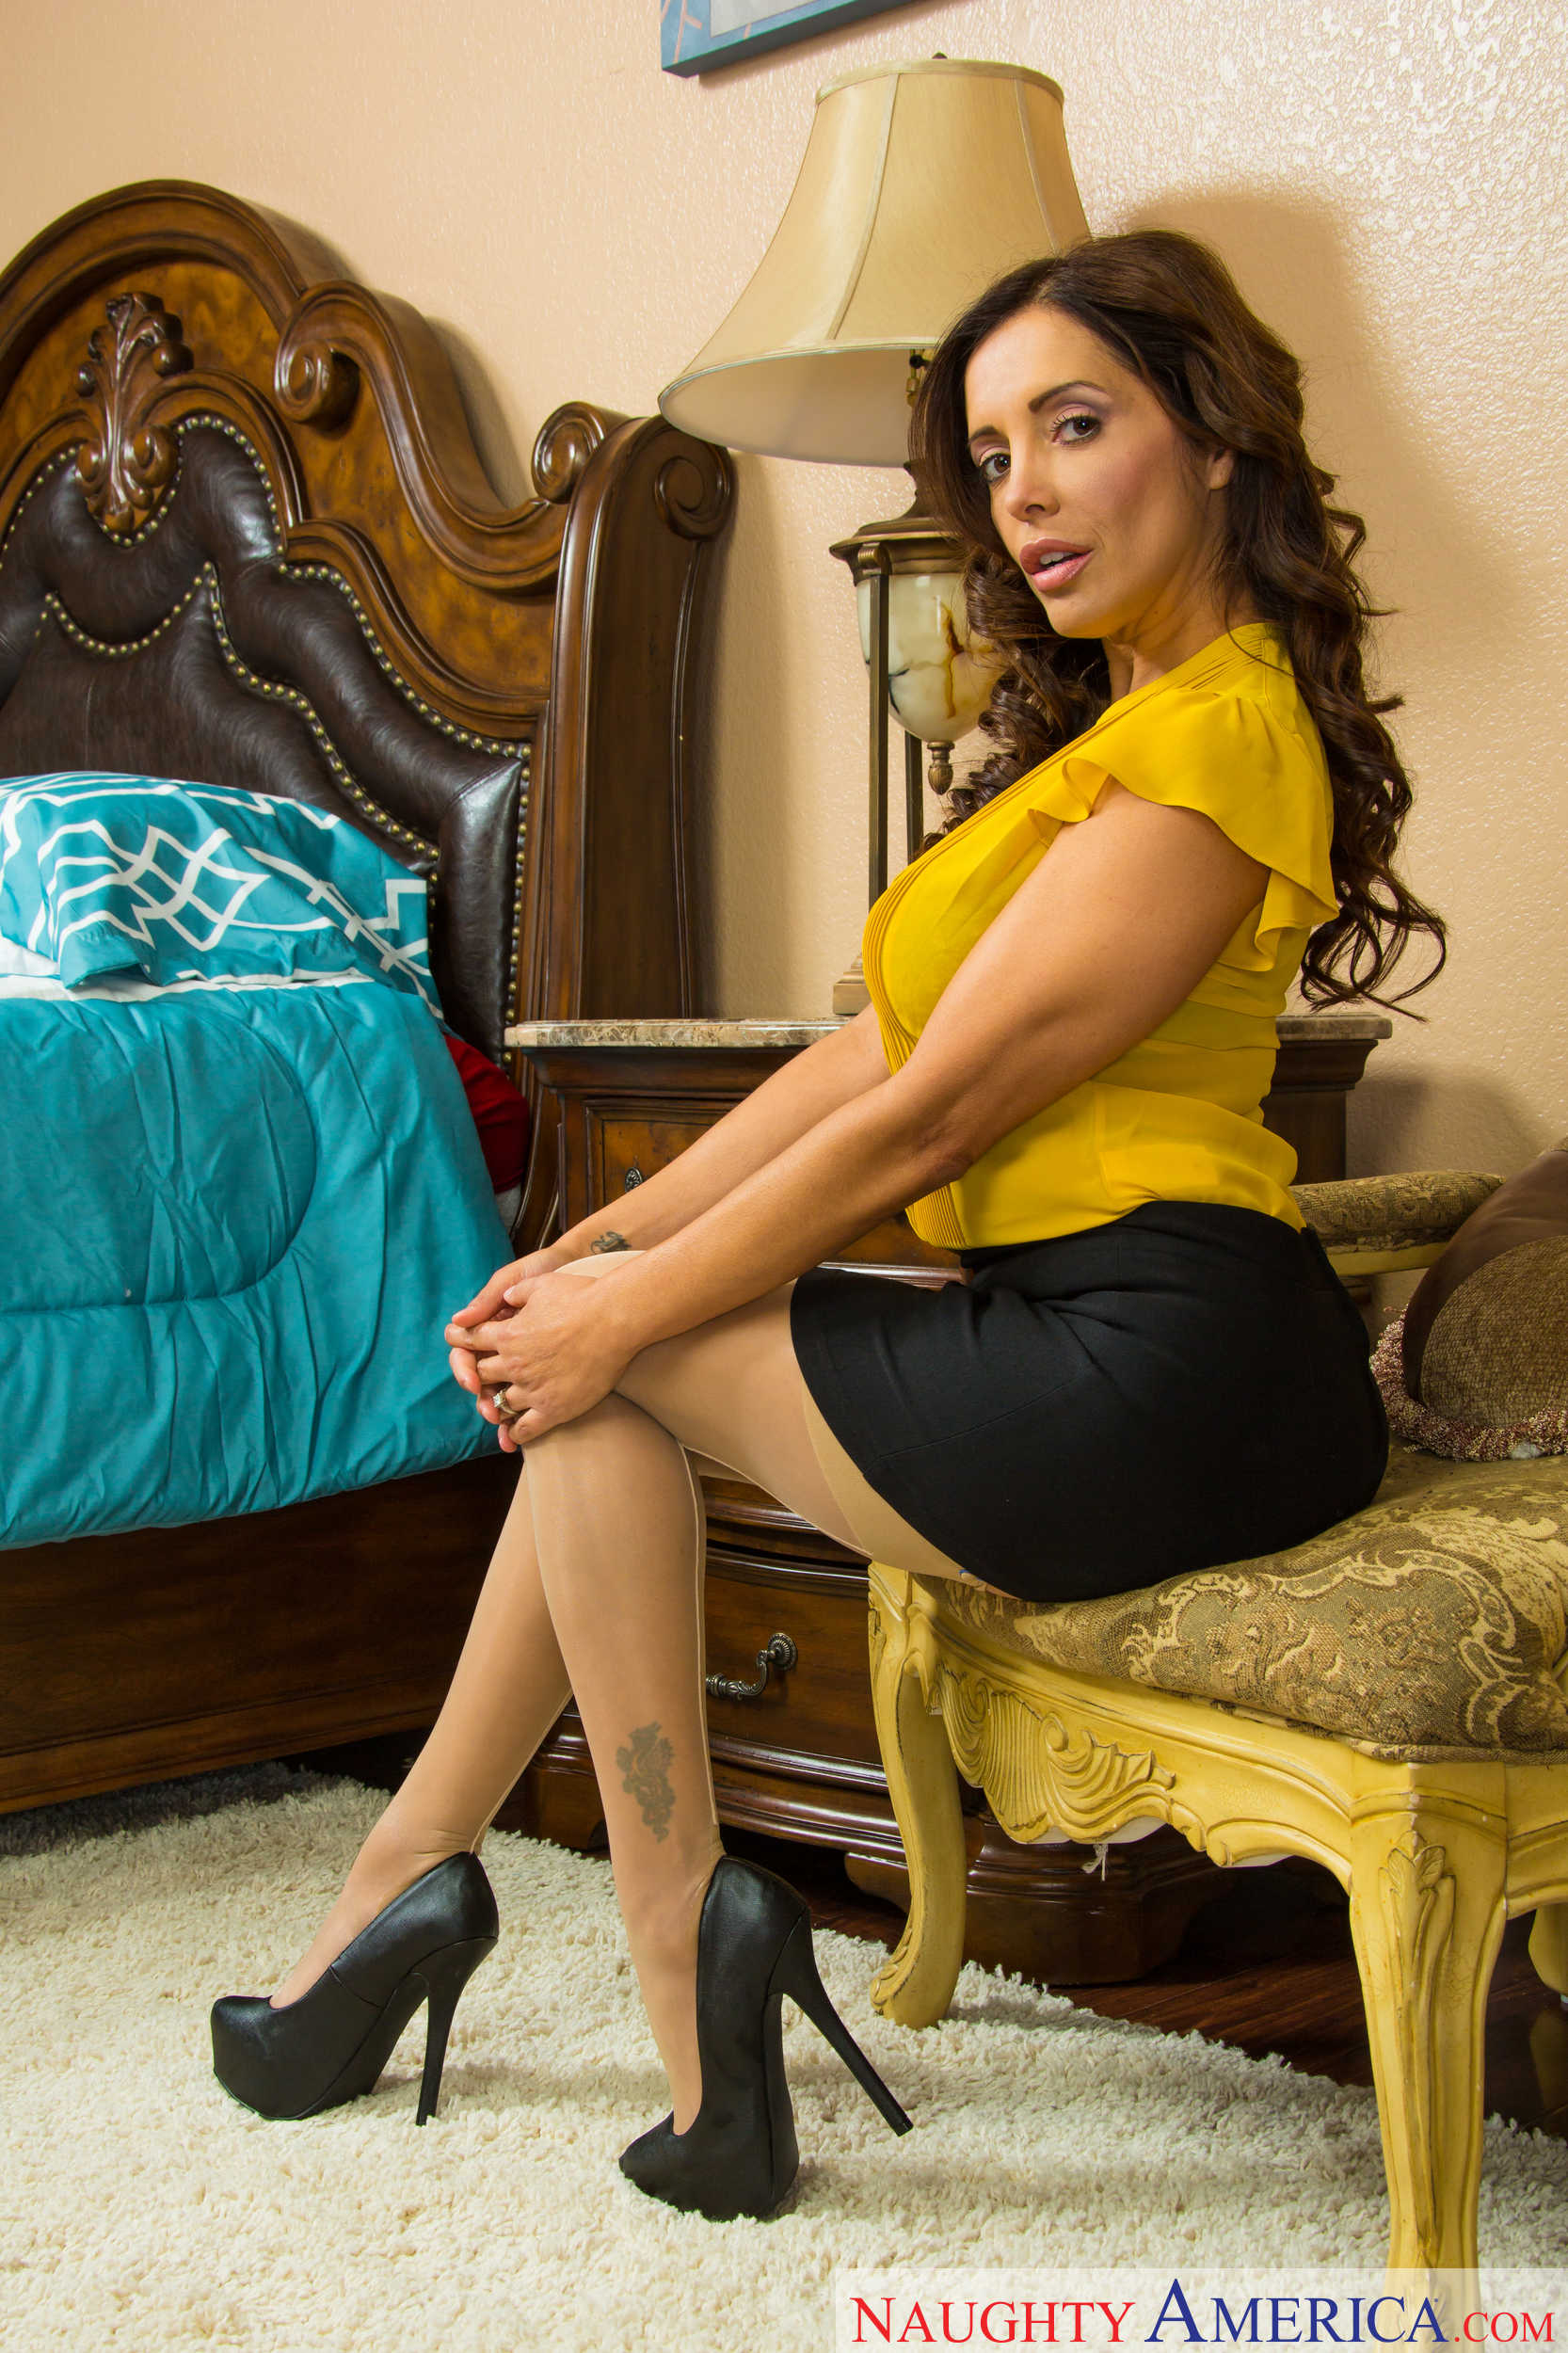 My Friends Hot Mommy Porn Movies my friends hot mom latina. xxx hd pictures free site.